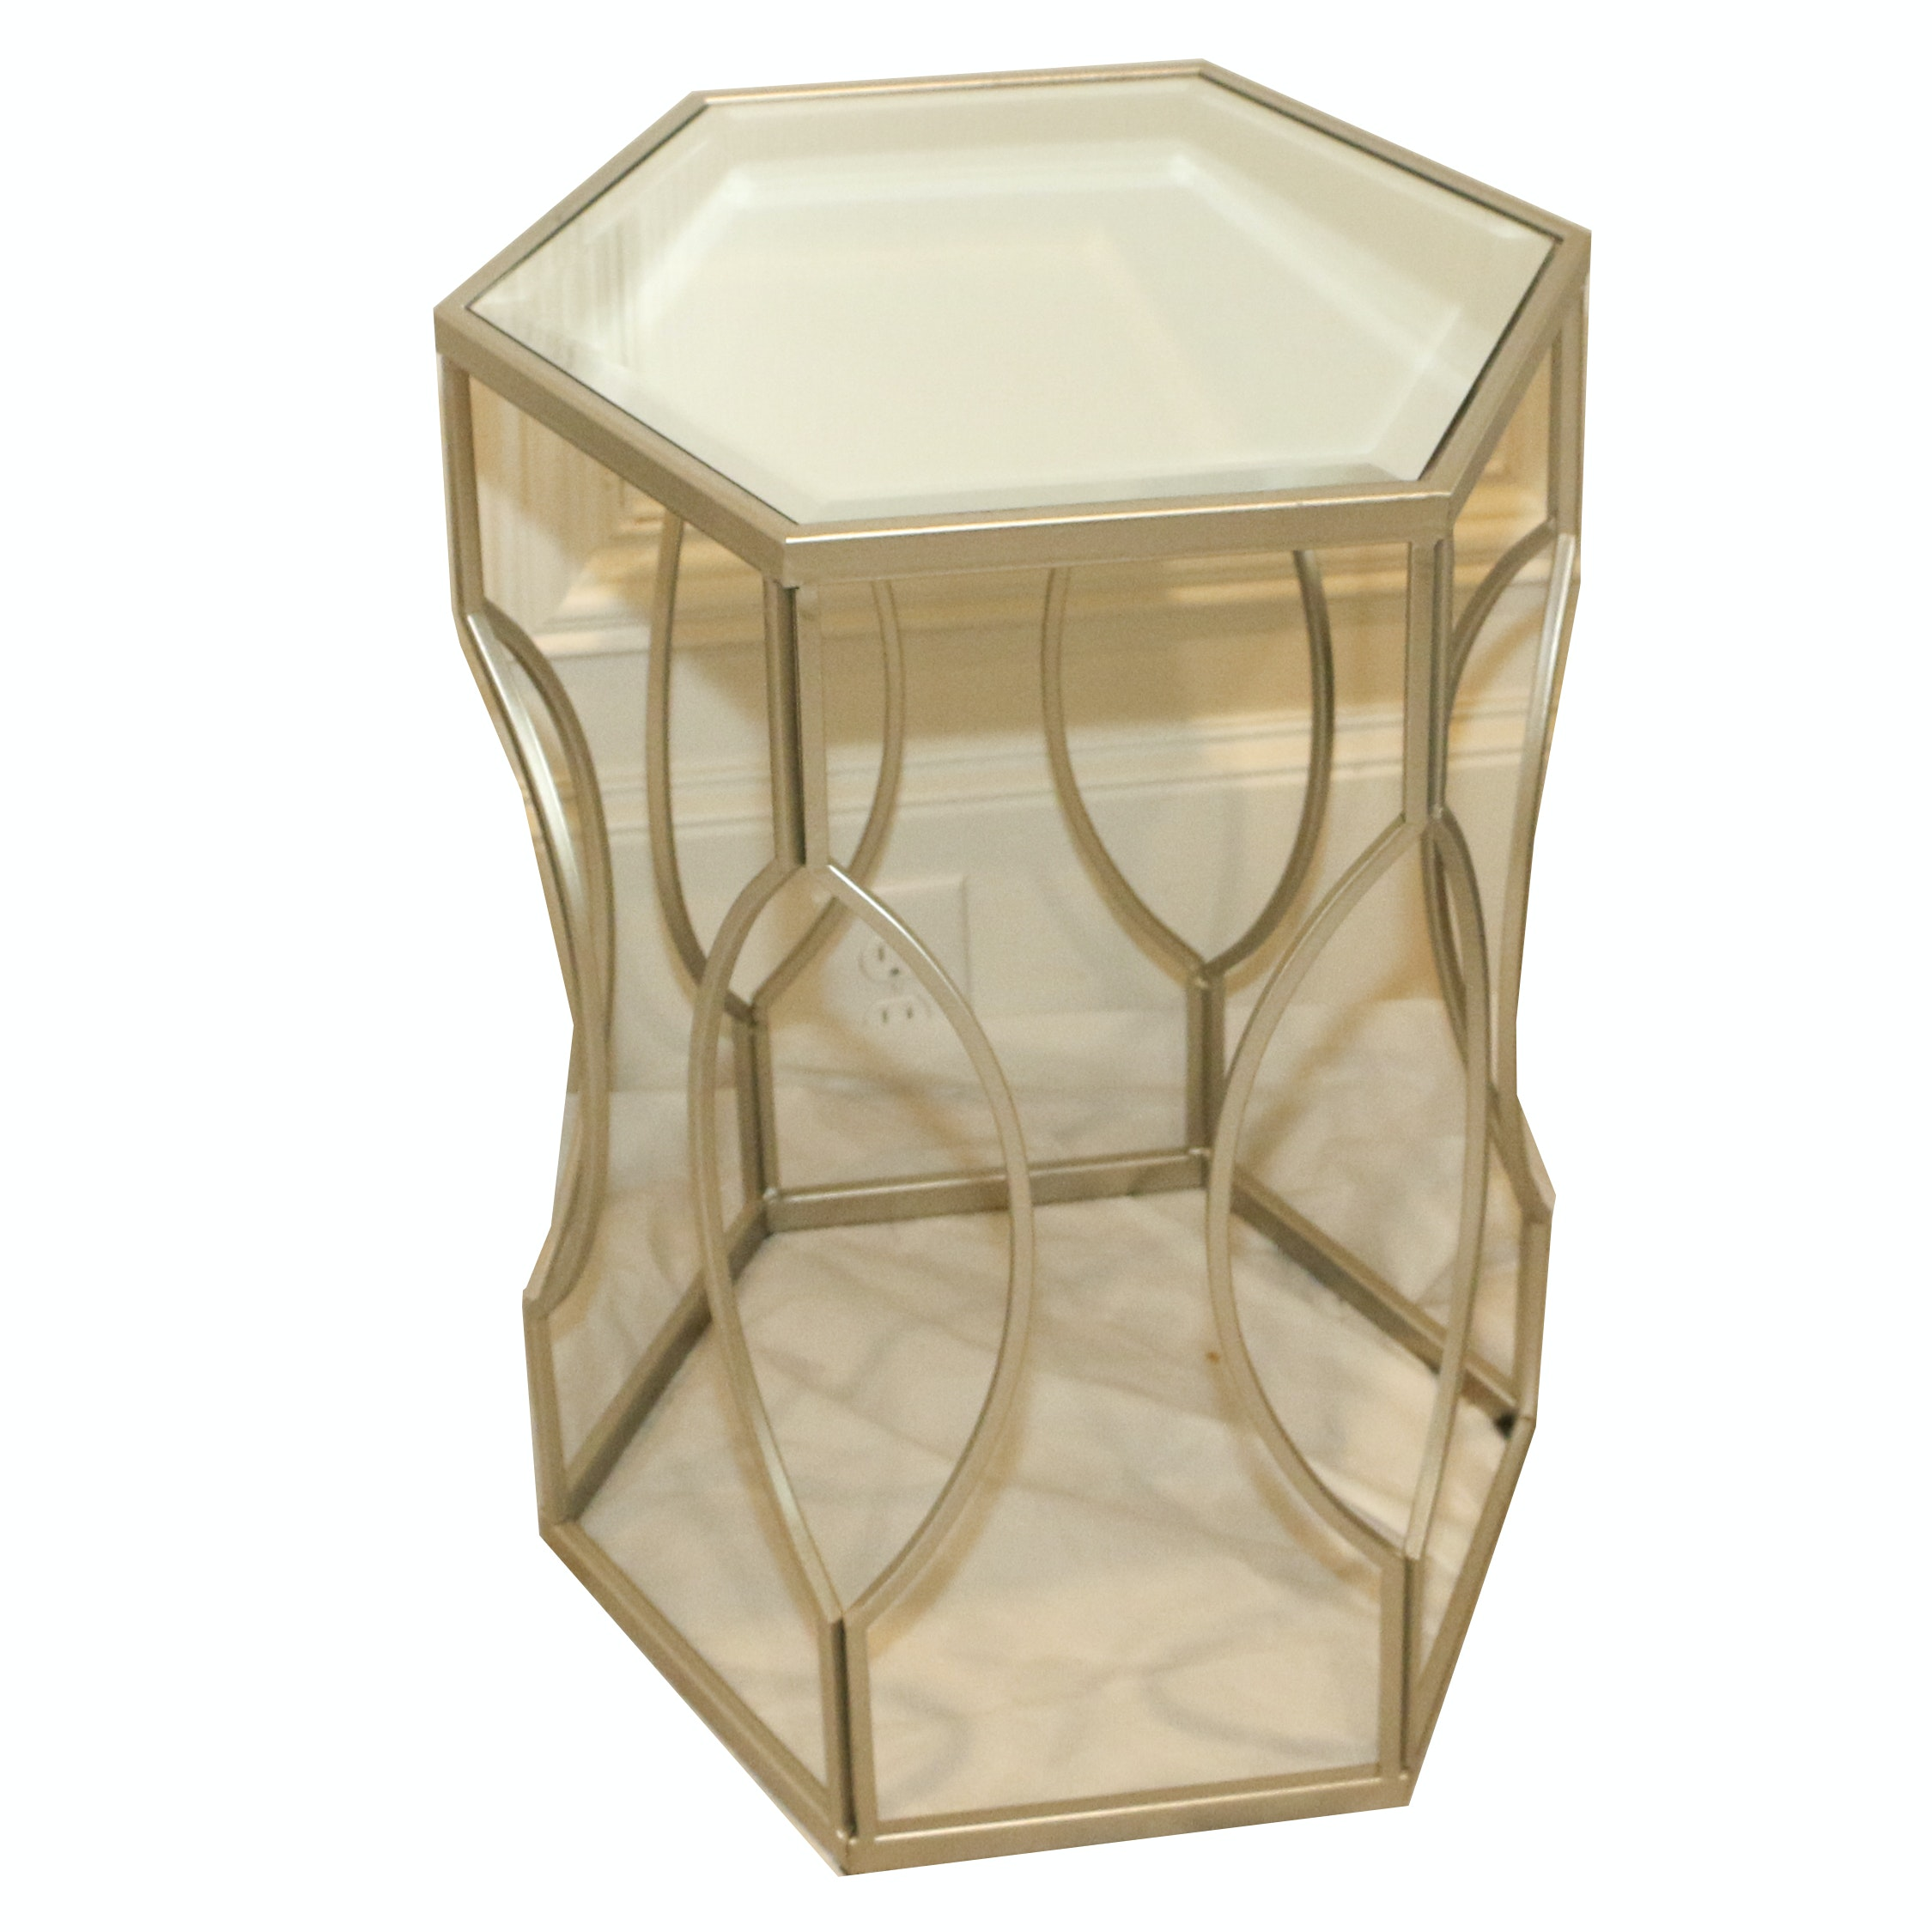 Mirror Top Hexagon Metal Side Table, 21st Century